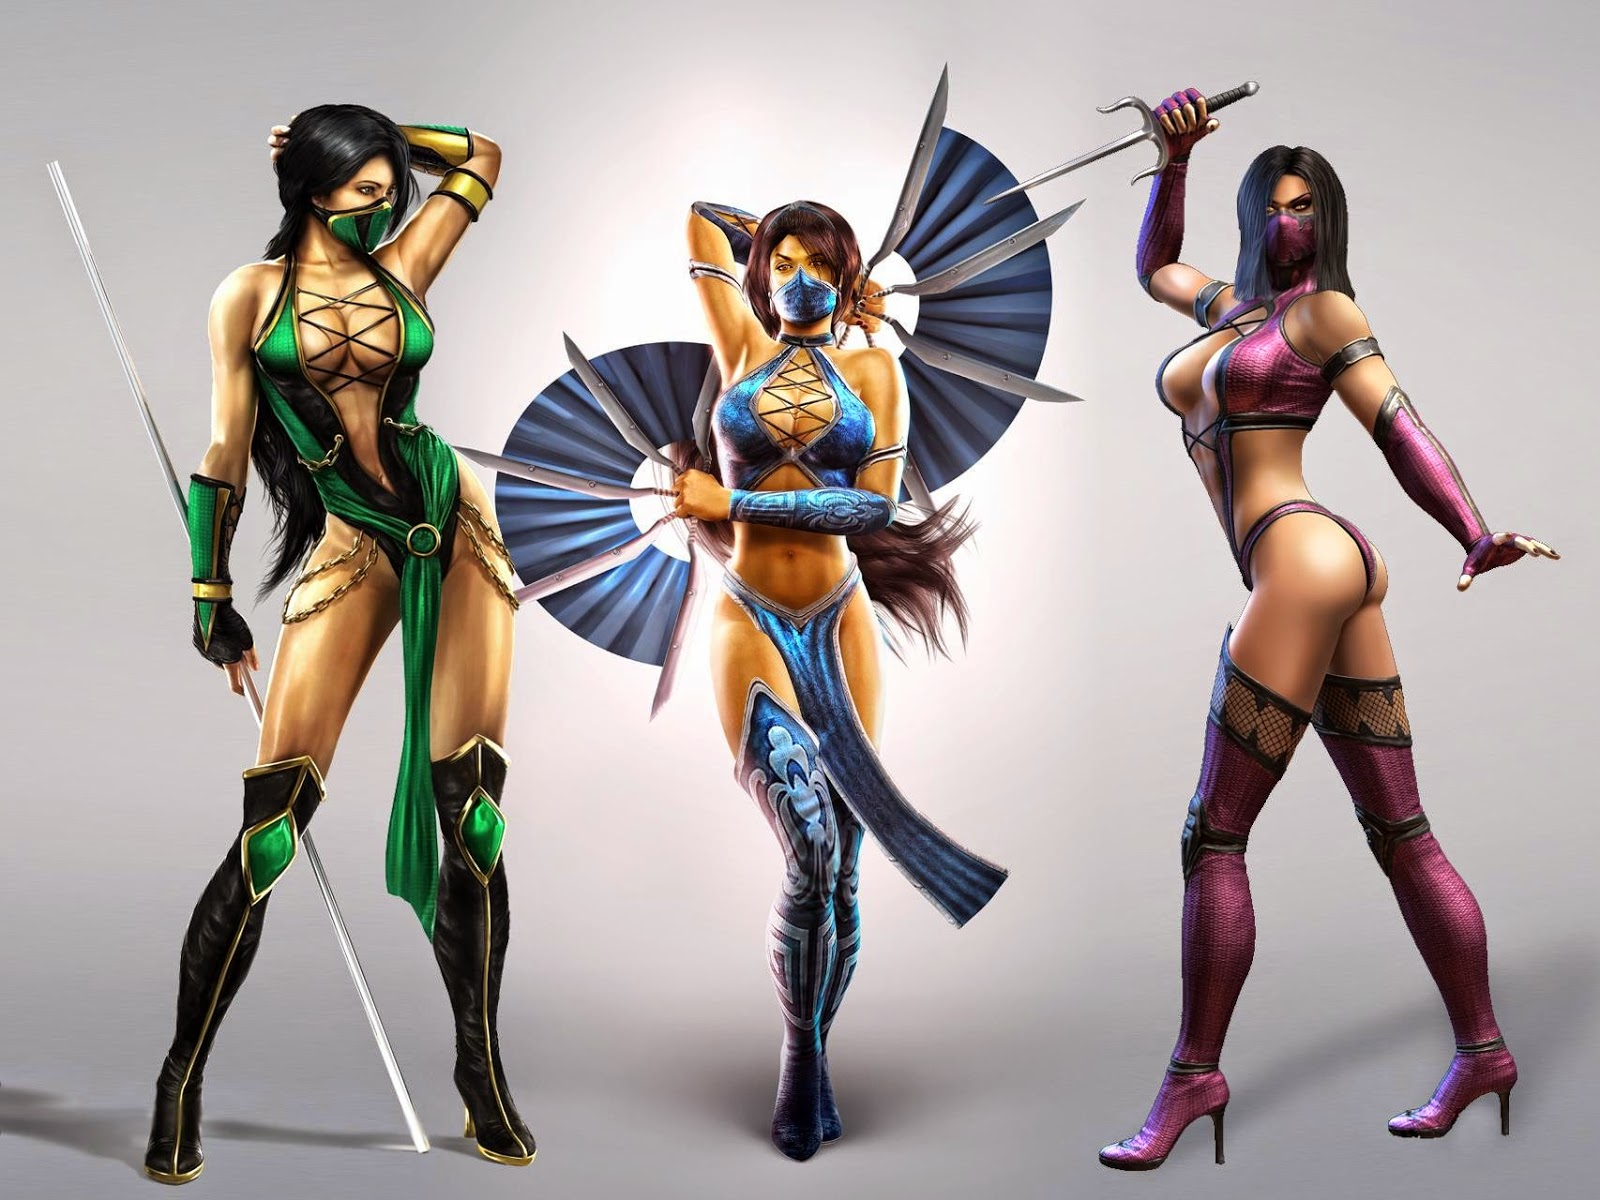 Mortal kombat female characters nude pic softcore videos